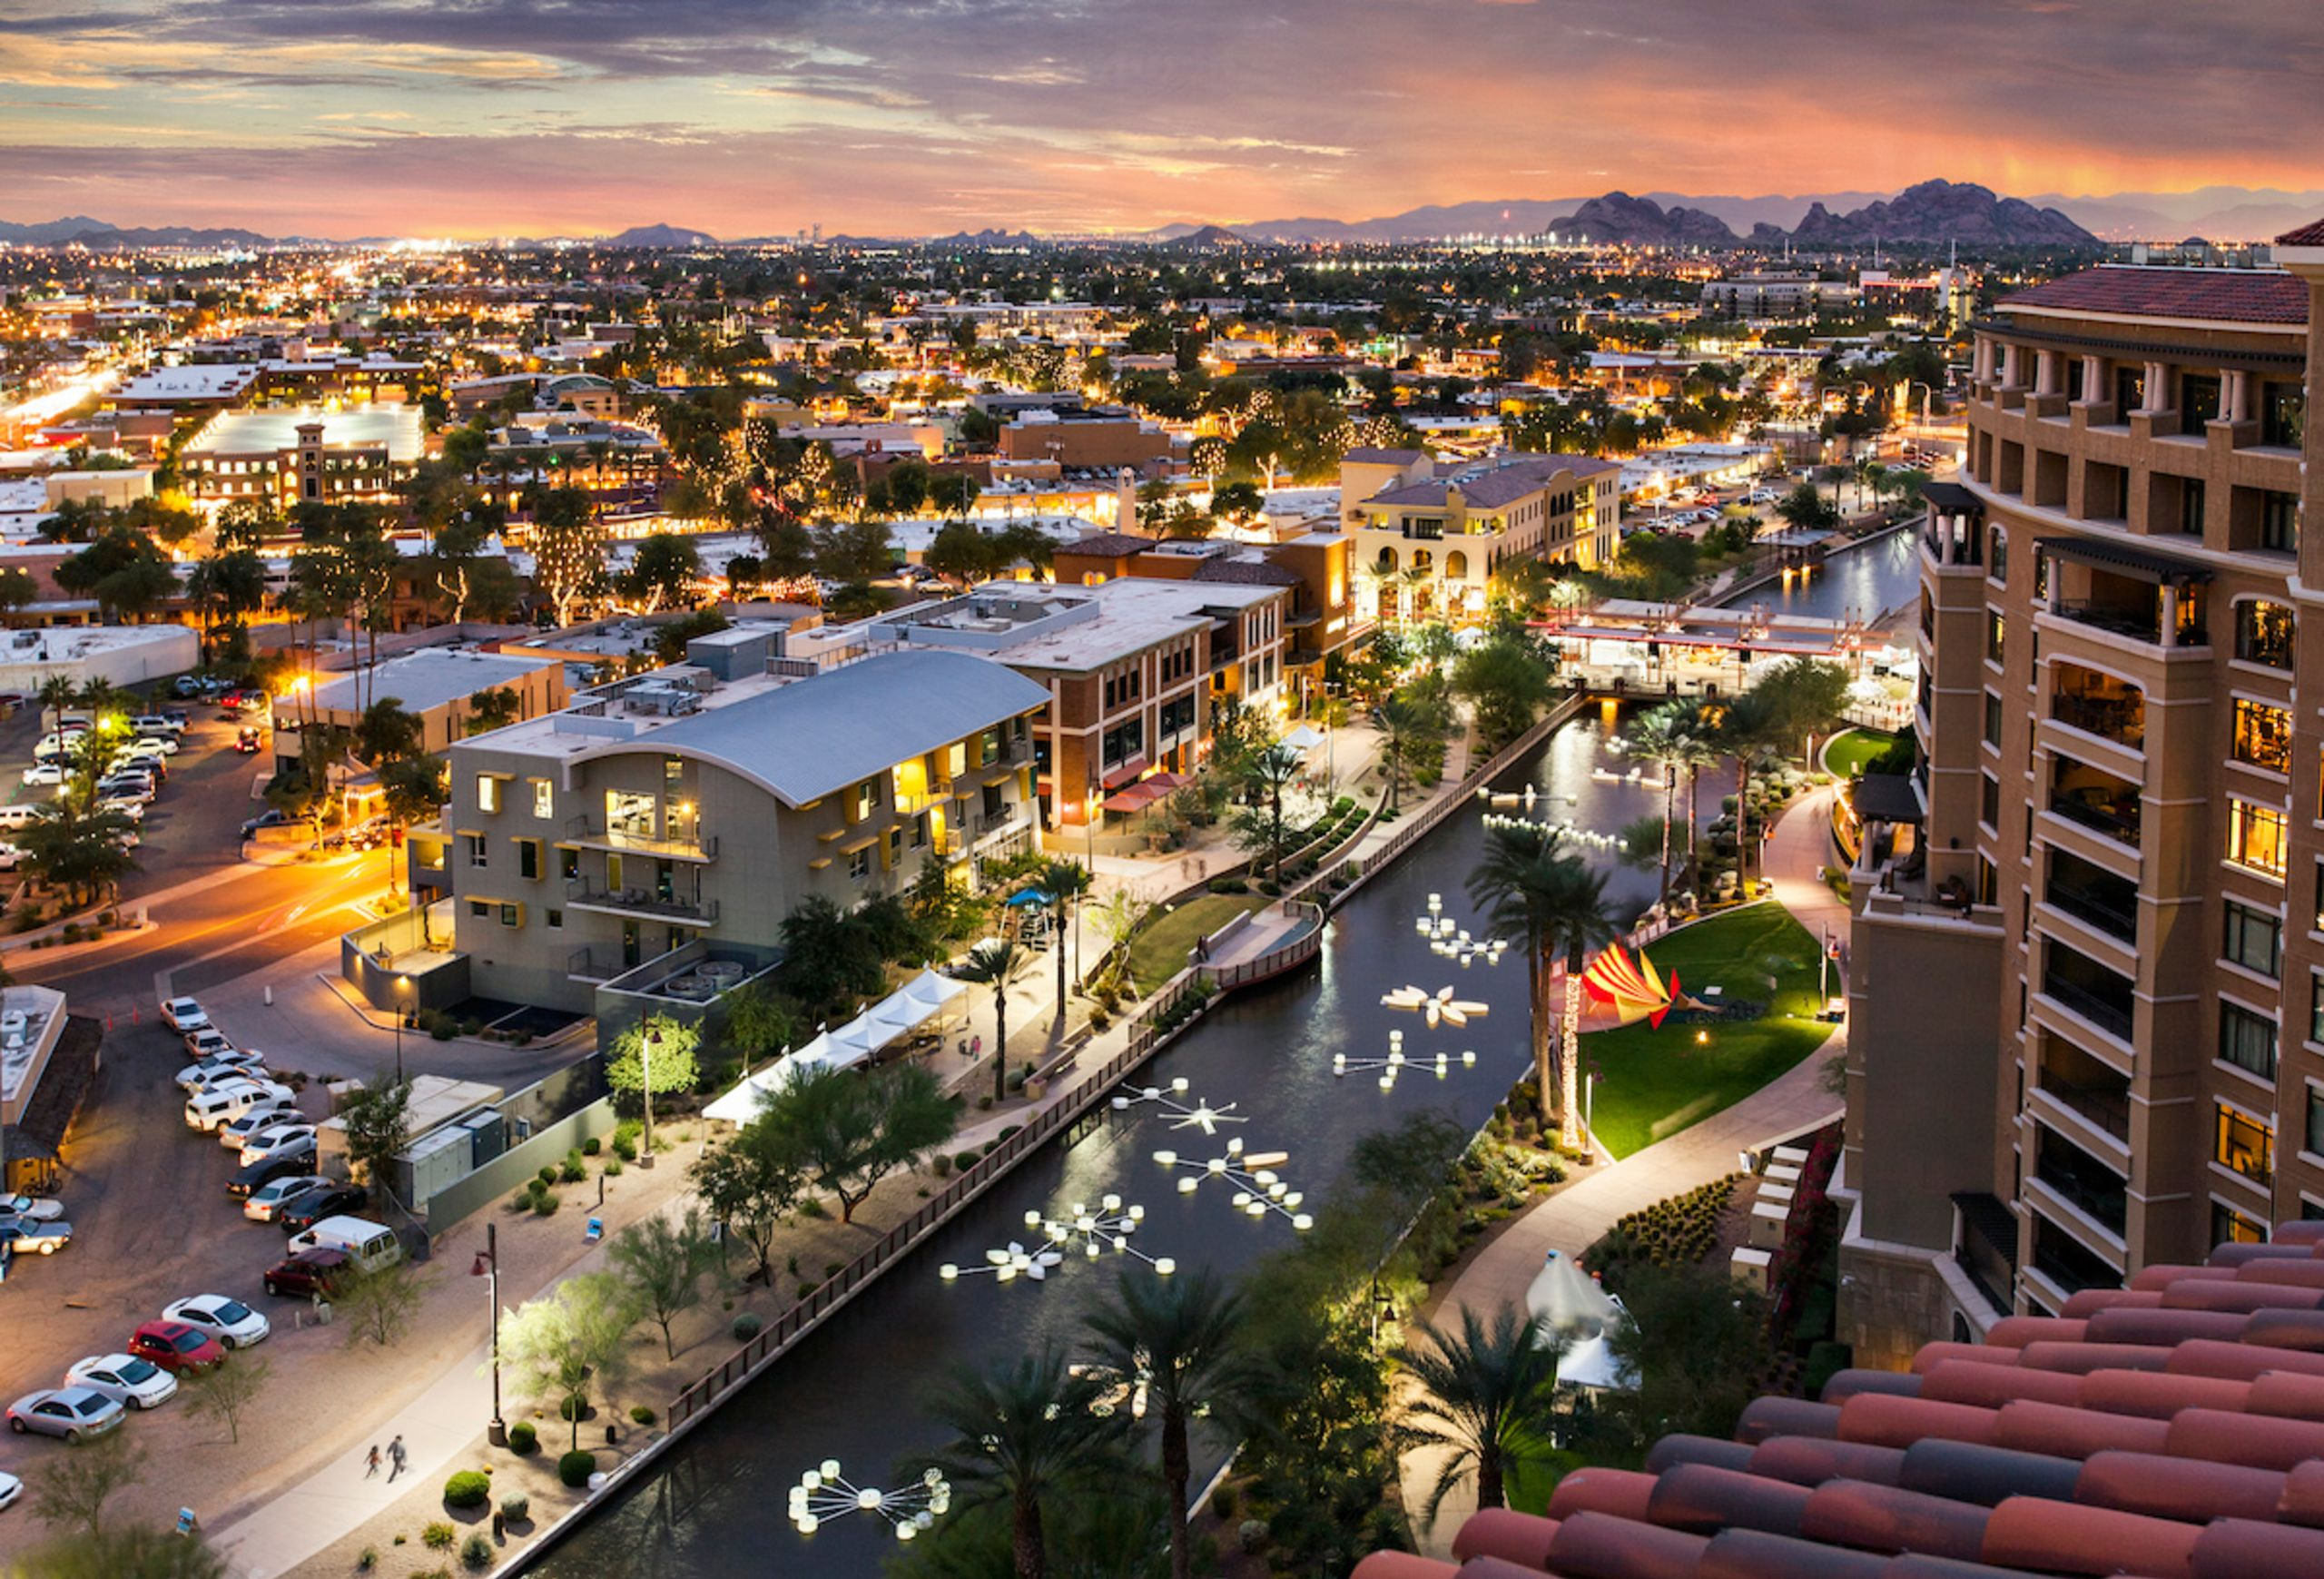 Old Town Scottsdale - Hub of Shopping, Fine Dining & Nightlife